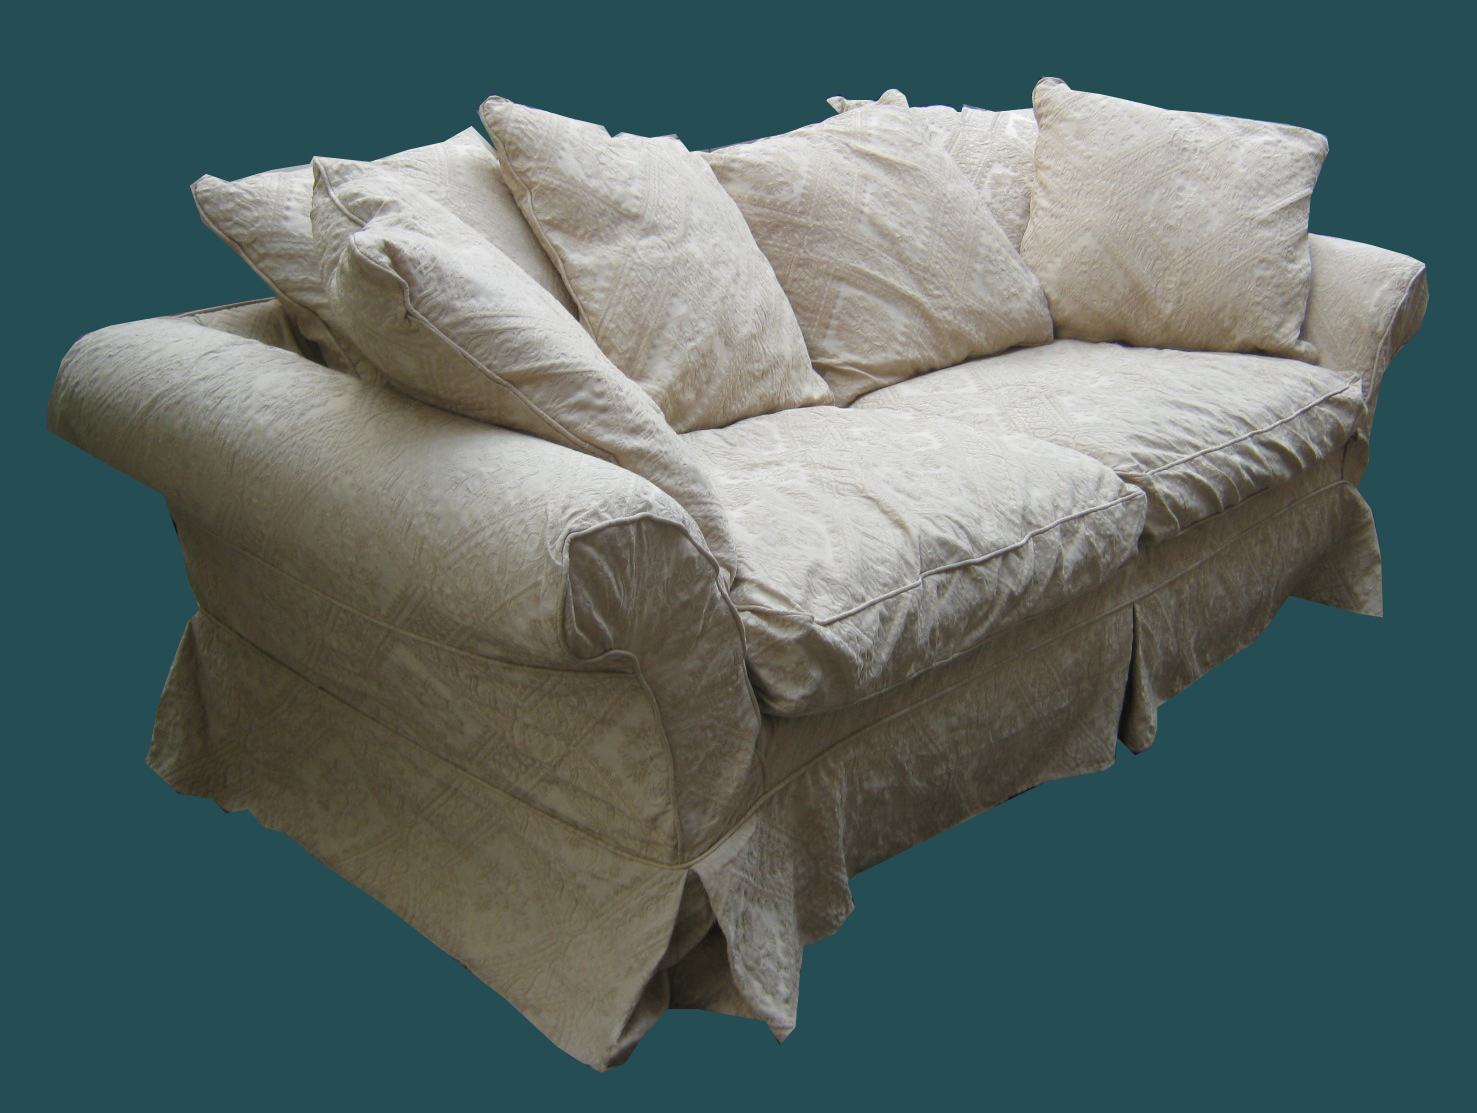 rose sofa slipcover decor to go with black leather slipcovers shabby chic ruffle white